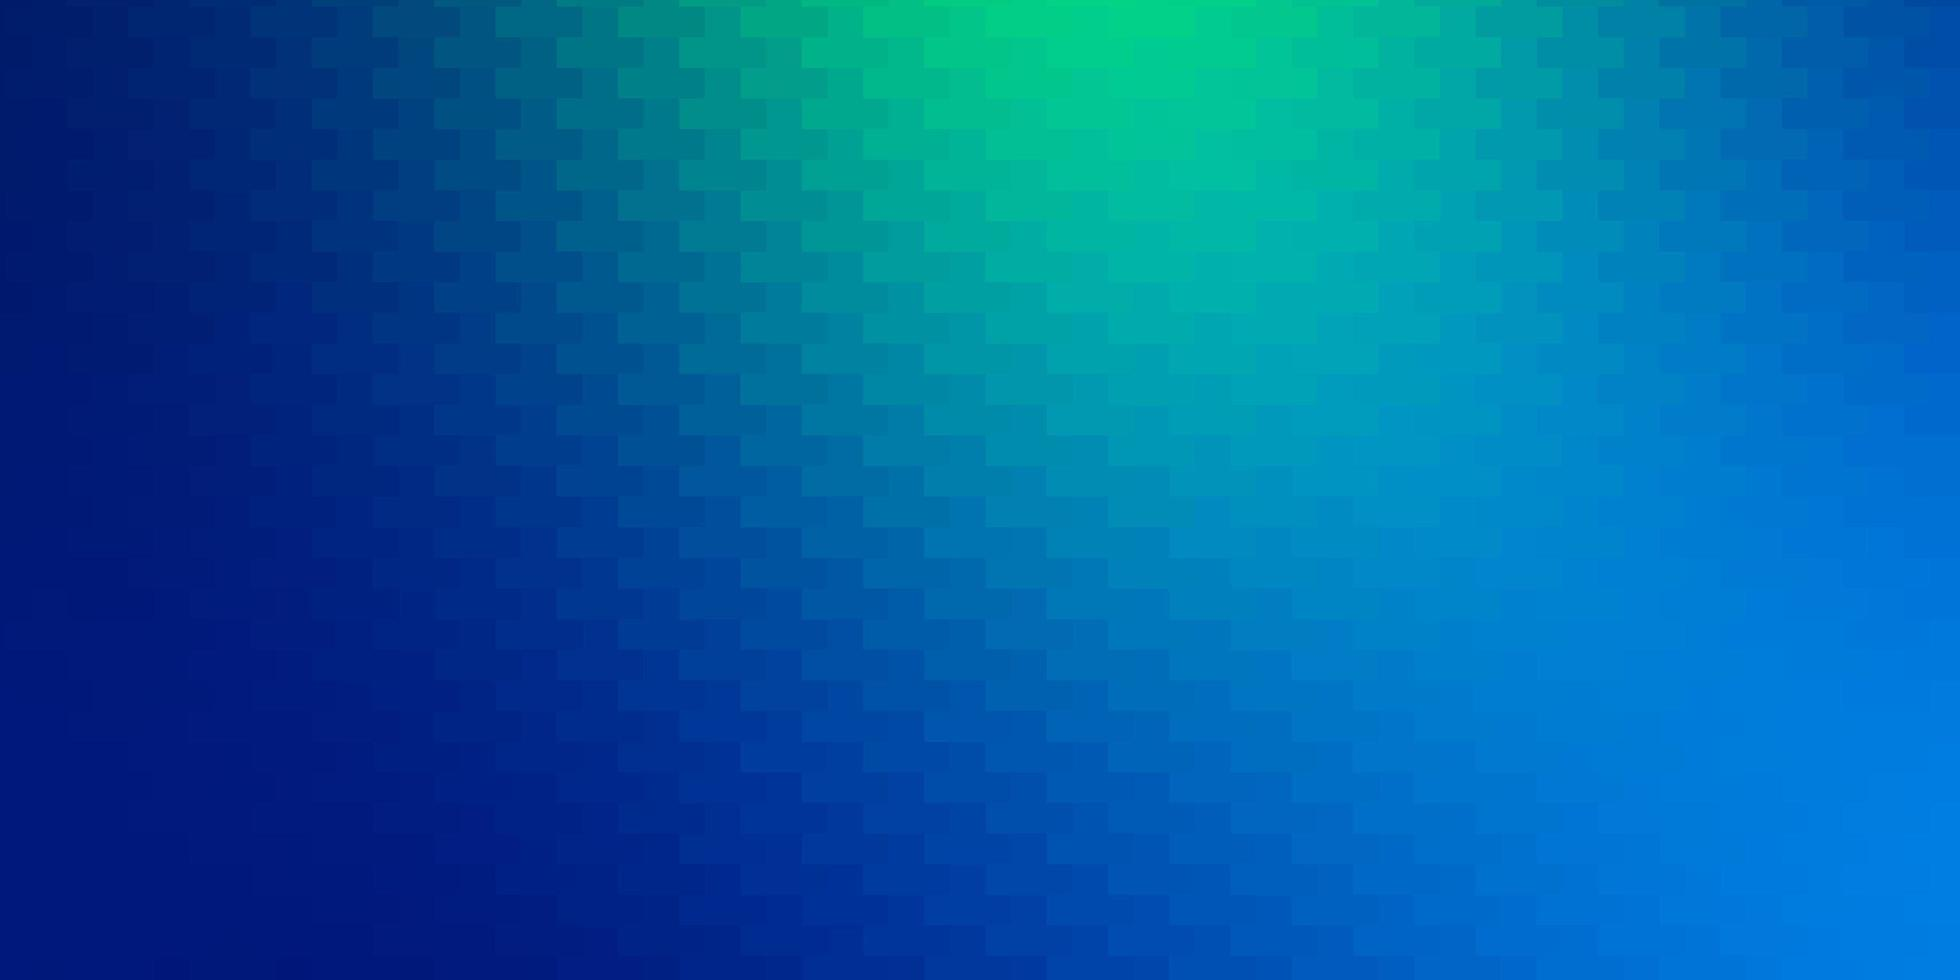 Light Blue, Green vector layout with lines, rectangles.